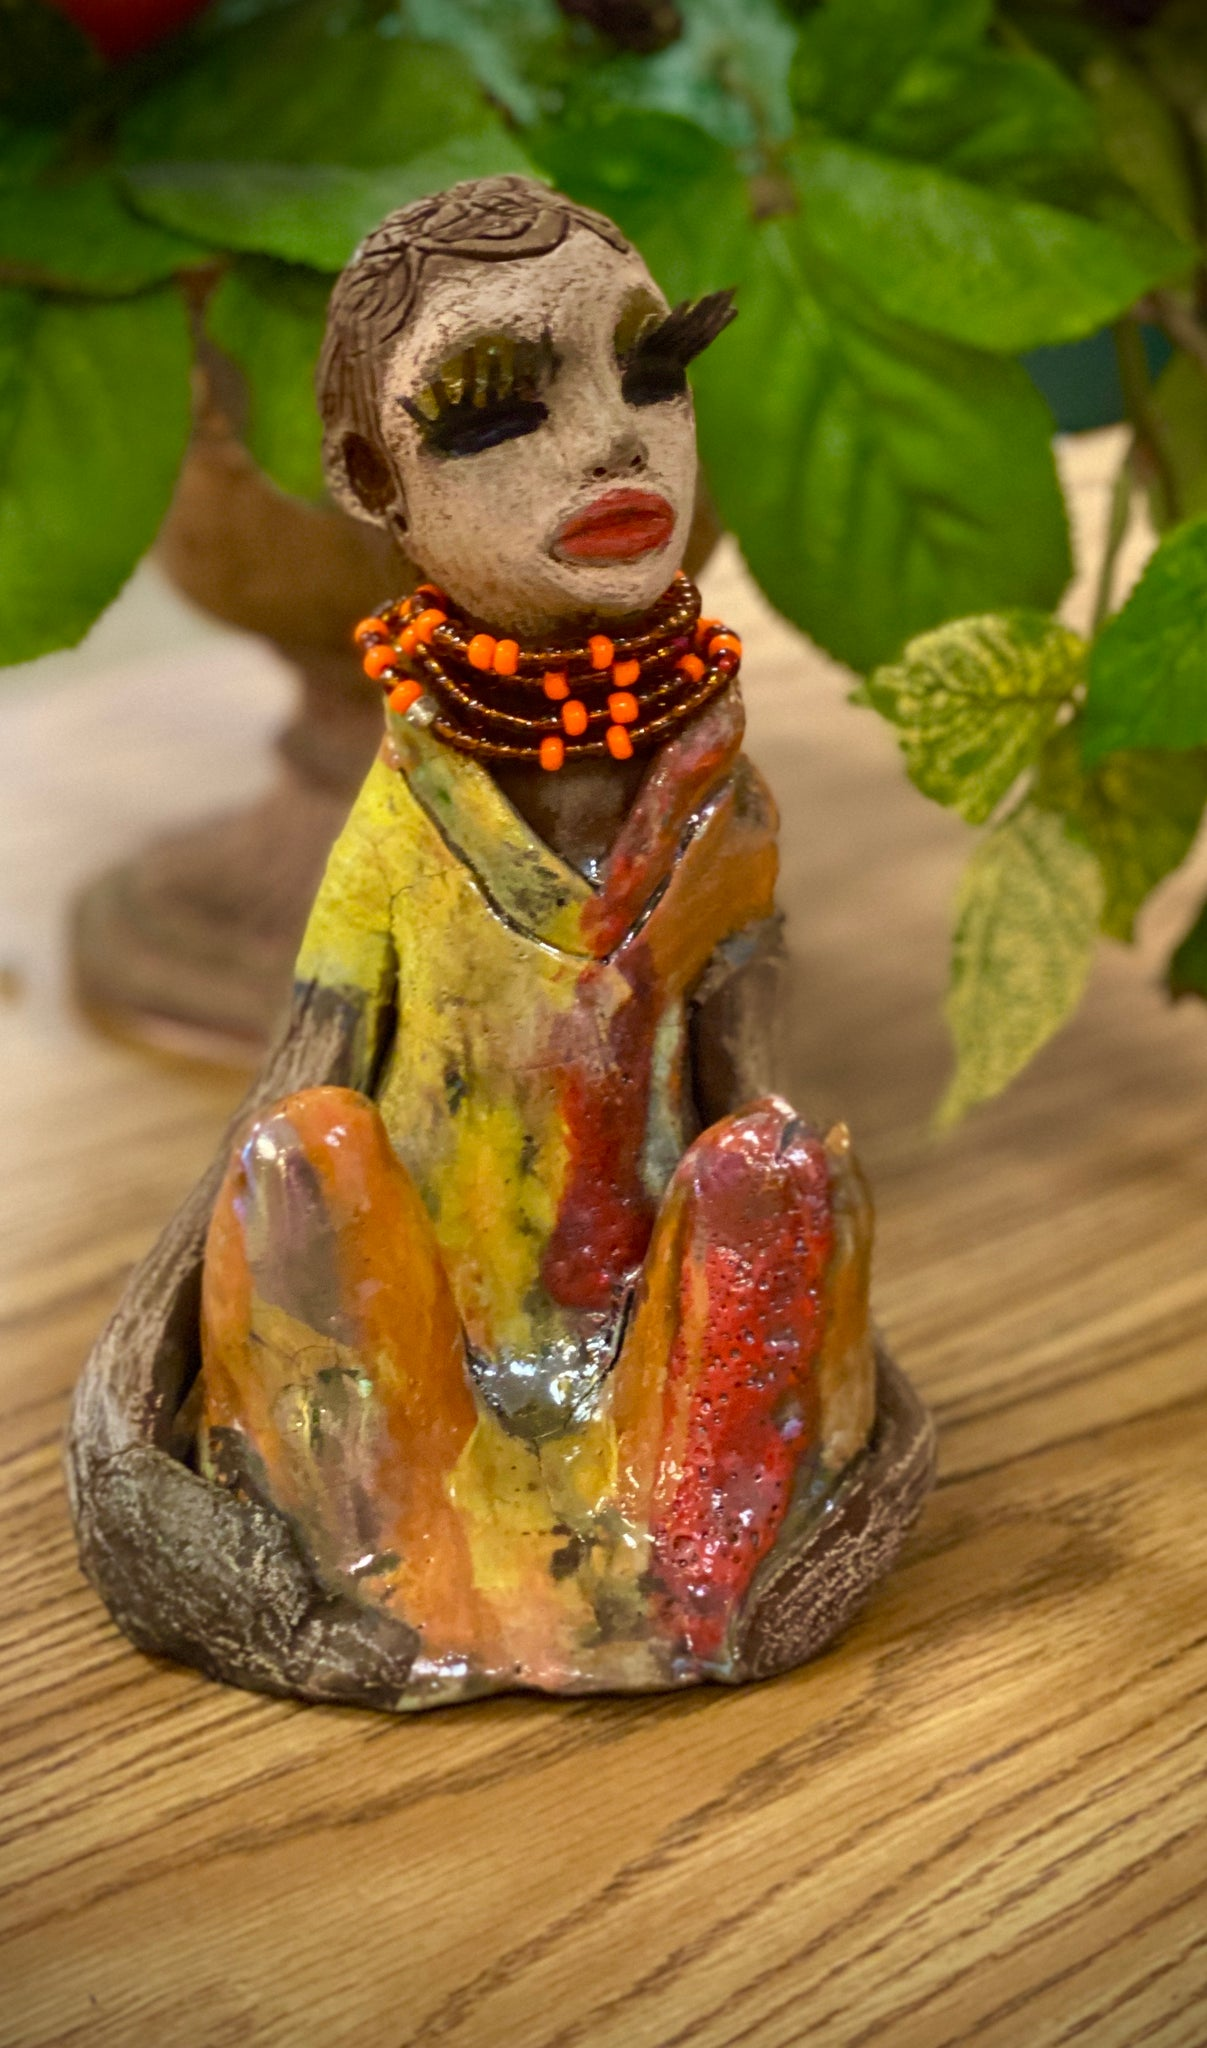 "Valeria sits approx. 7""x 4""x 4.5"" and weighs 1.9 bs. Valeria has her arms nestled beside her knees contemplating her position with some concern . She has a beige colored complexion adorned with long eye lashes and ruby red lips. Her dress is multicolored with glossy metallic yellow red glaze.  A string of orange beads wraps gently around her neck. Her hair is made of etched clay."